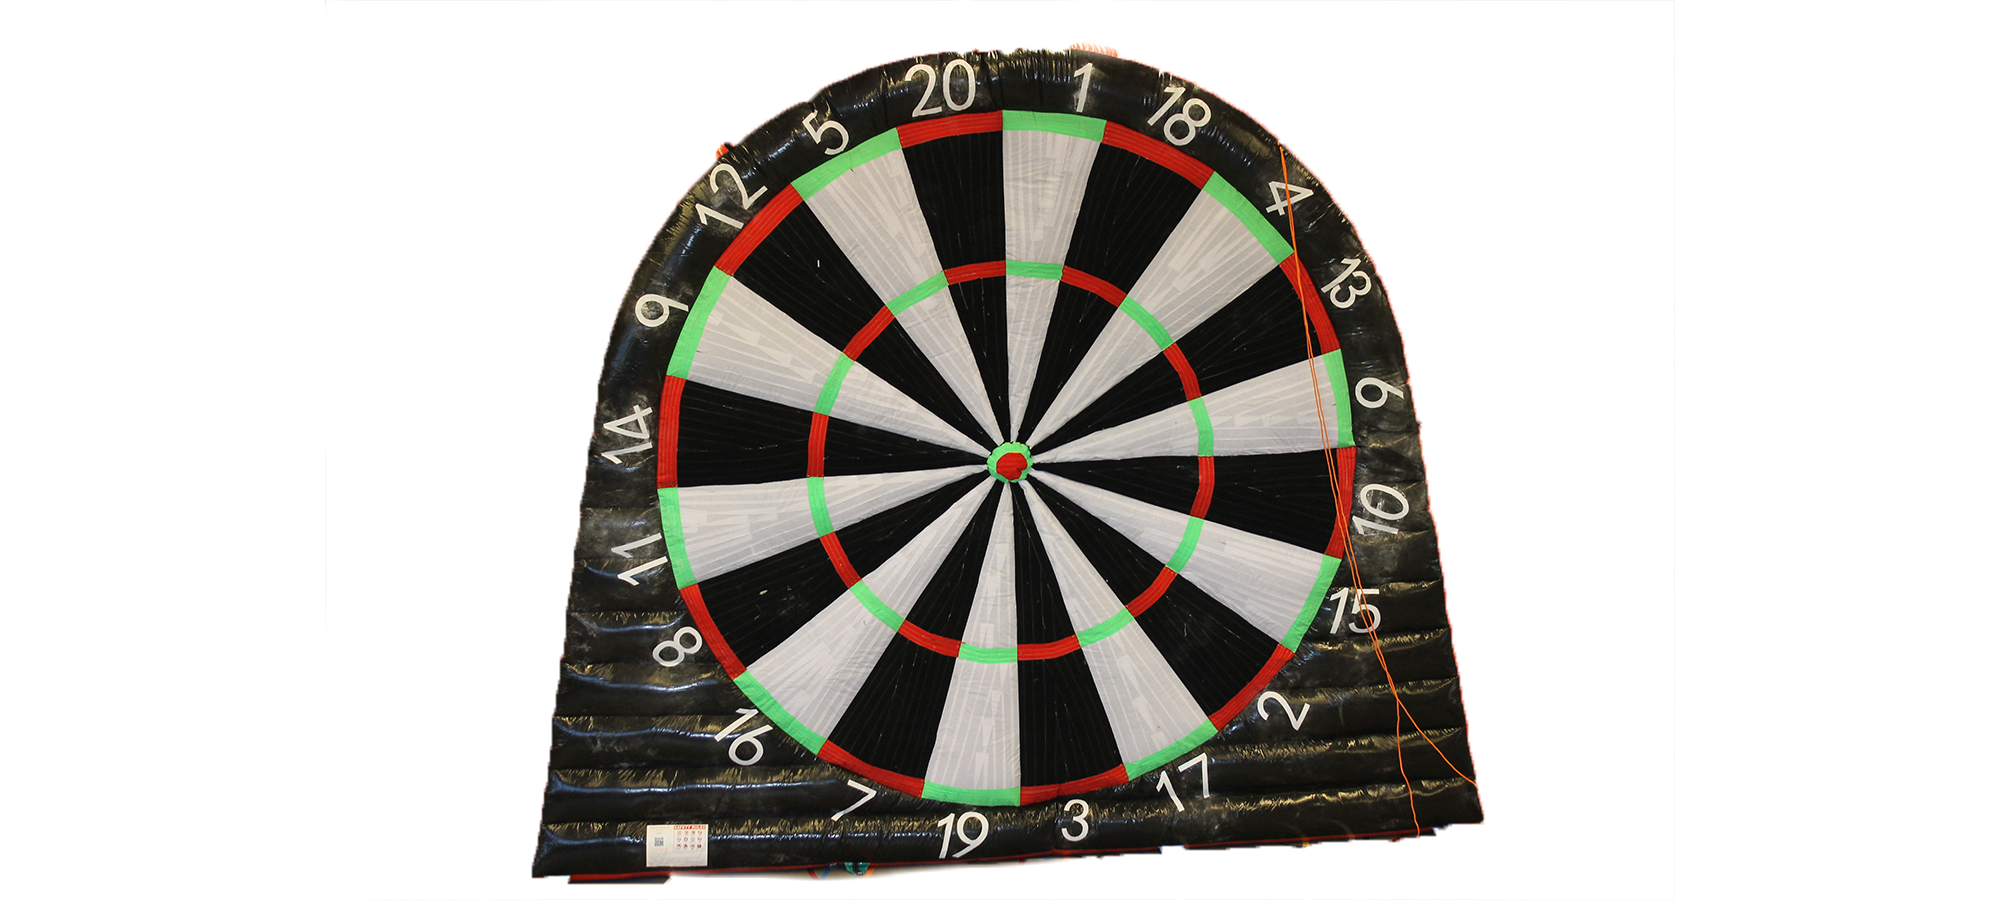 Reuze Football Darts